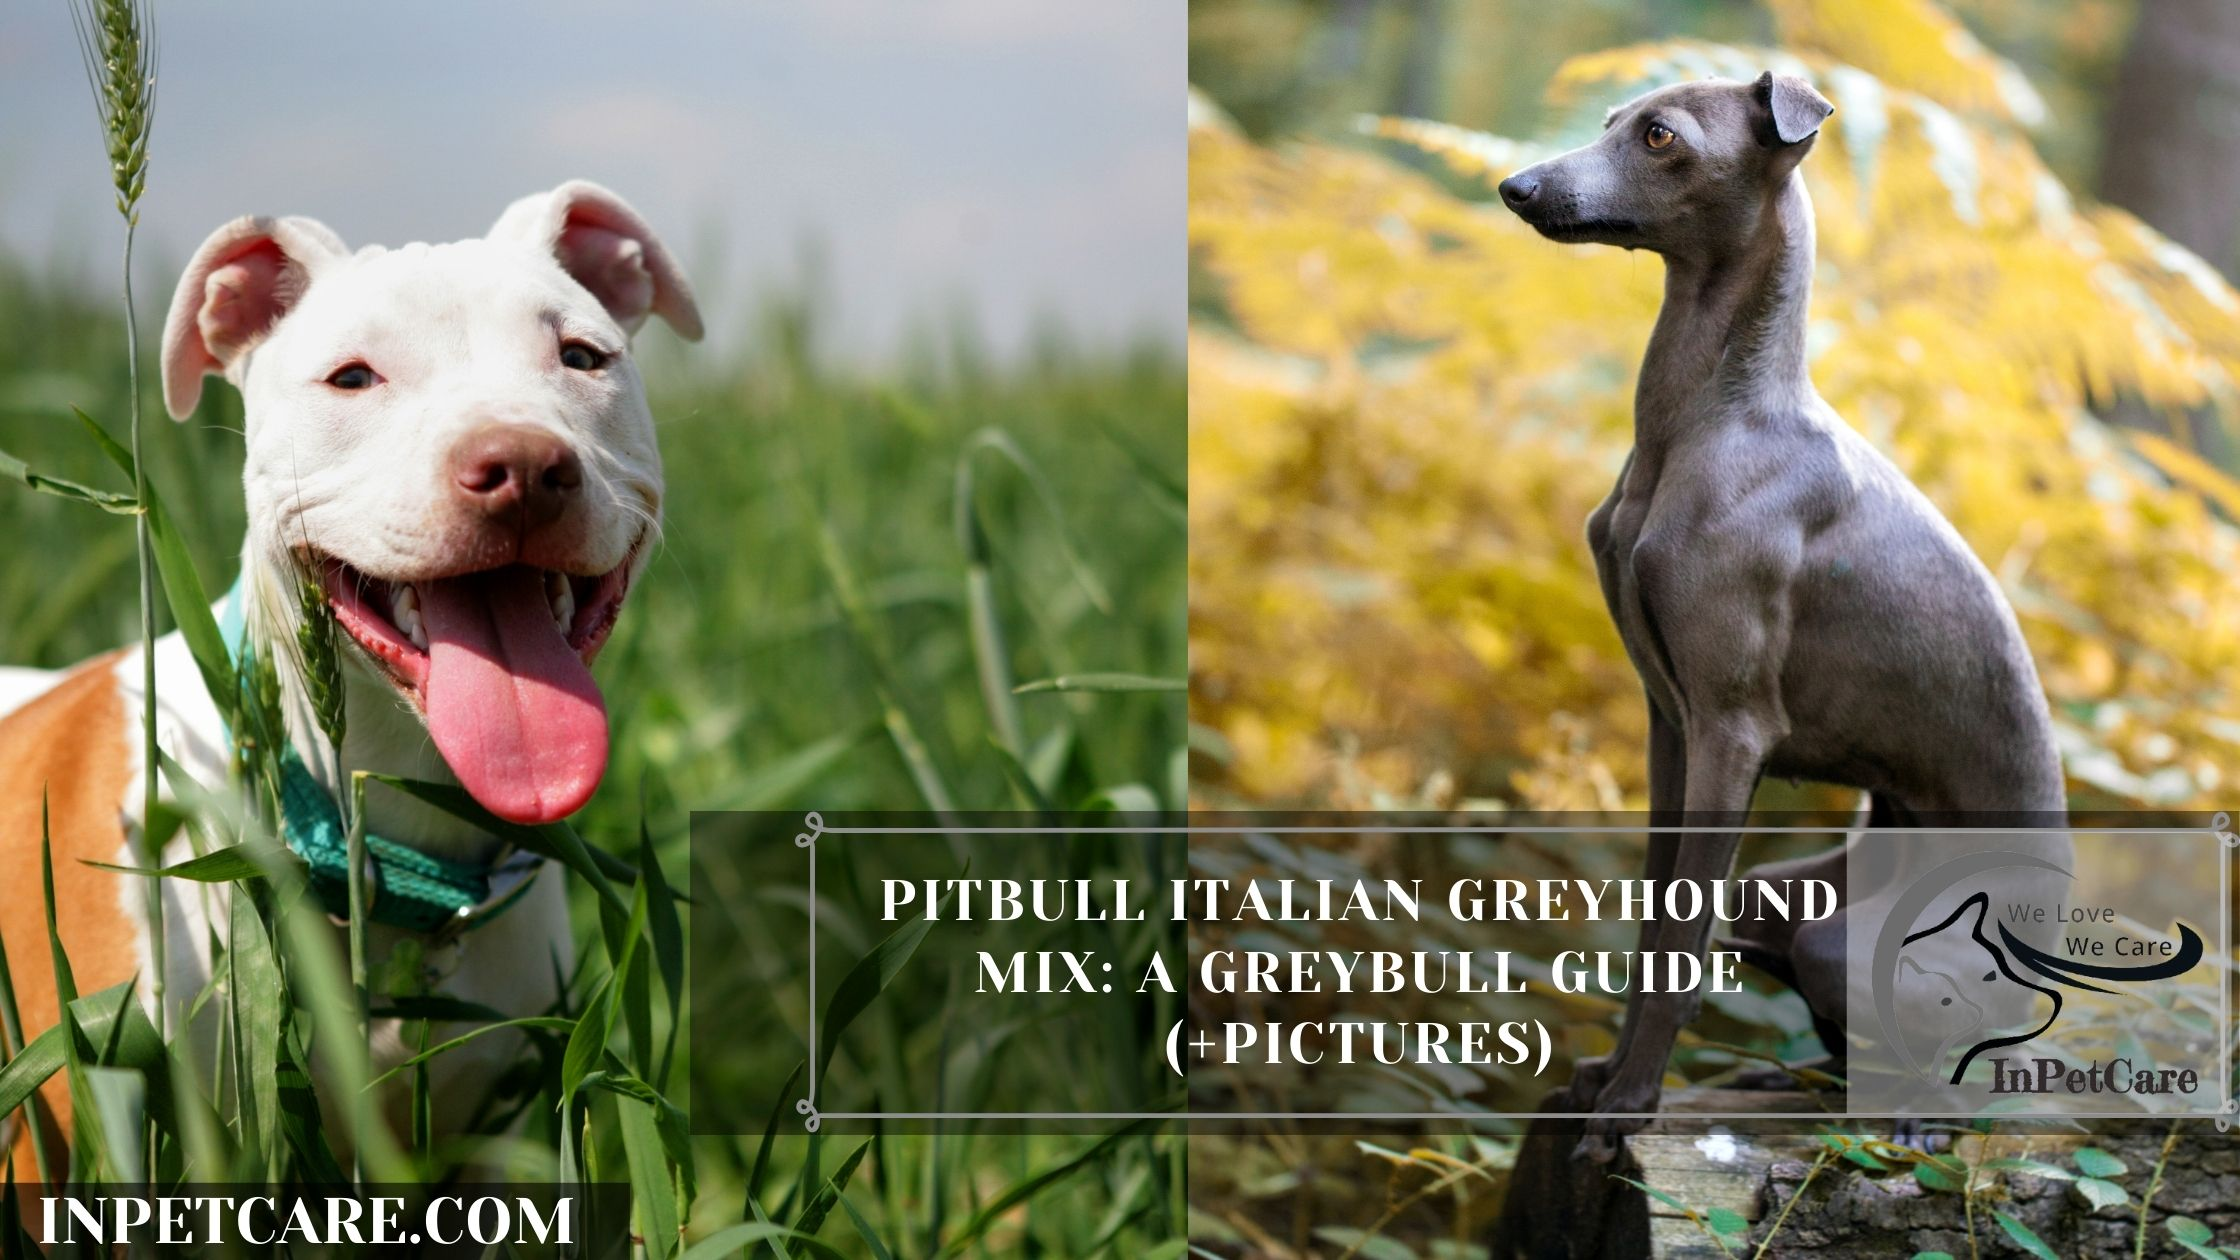 Pitbull Italian Greyhound Mix: A Greybull Guide (+Pictures)